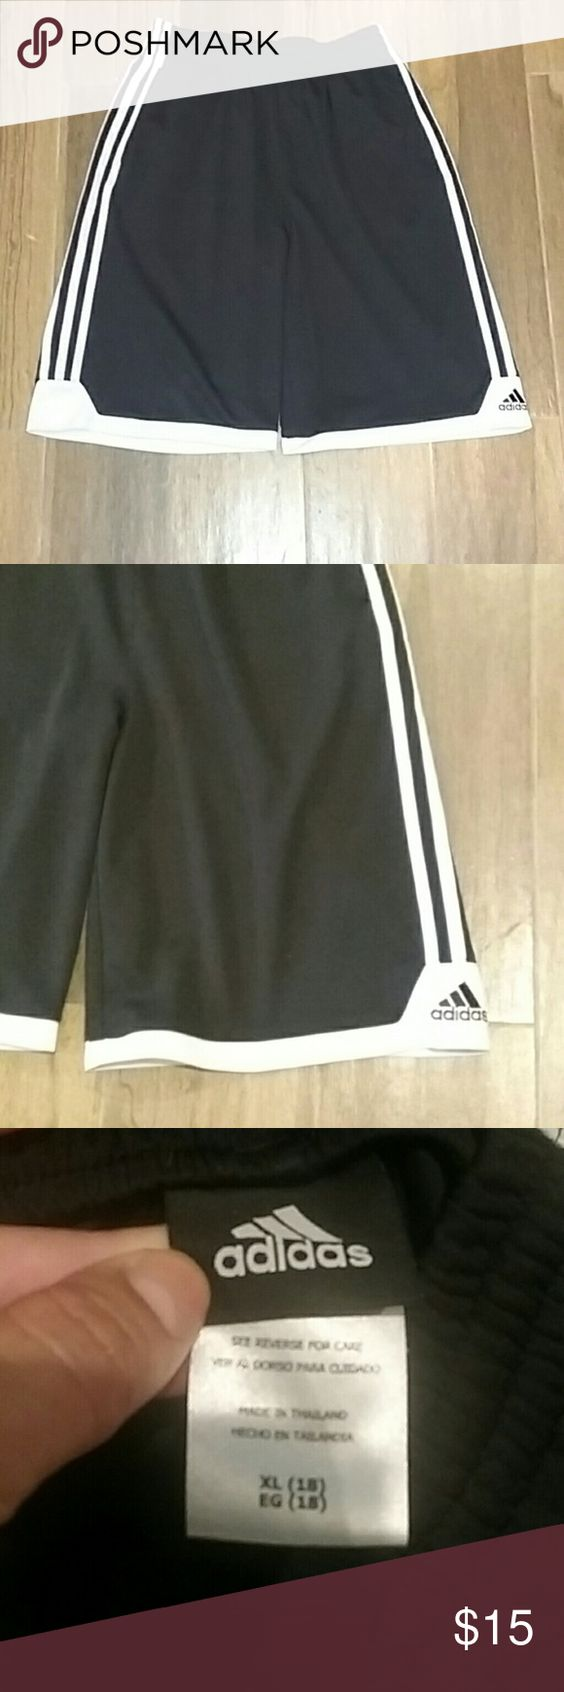 TWO  Pairs of Adidas Shorts Very good quality Adidas shorts. Boys XL, MEN SMALL- Medium. Adidas Bottoms Shorts